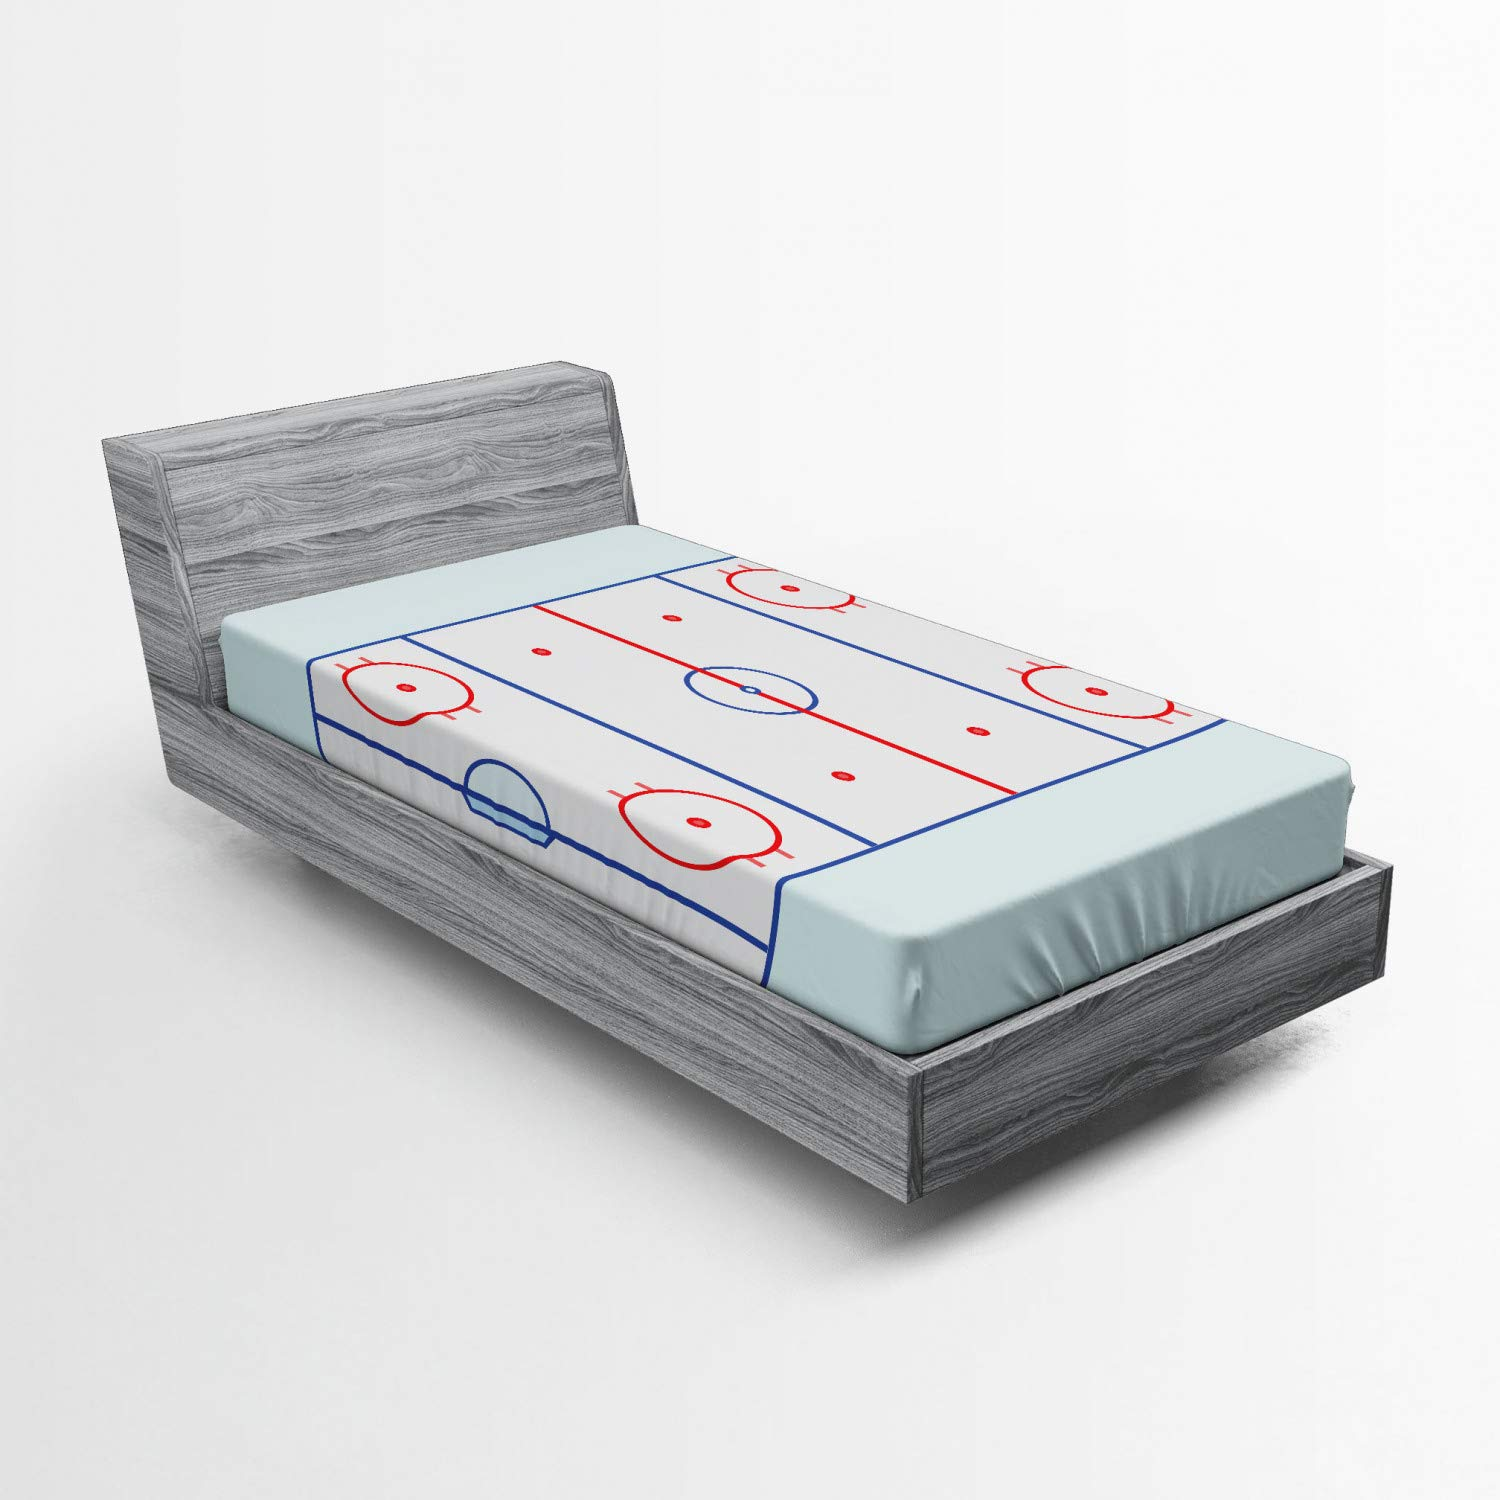 Ambesonne Hockey Fitted Sheet, Ice Hockey Field in Blue Tones and Red Graphic Outline for Sport Events, Soft Decorative Fabric Bedding All-Round Elastic Pocket, Twin Size, Pale Blue